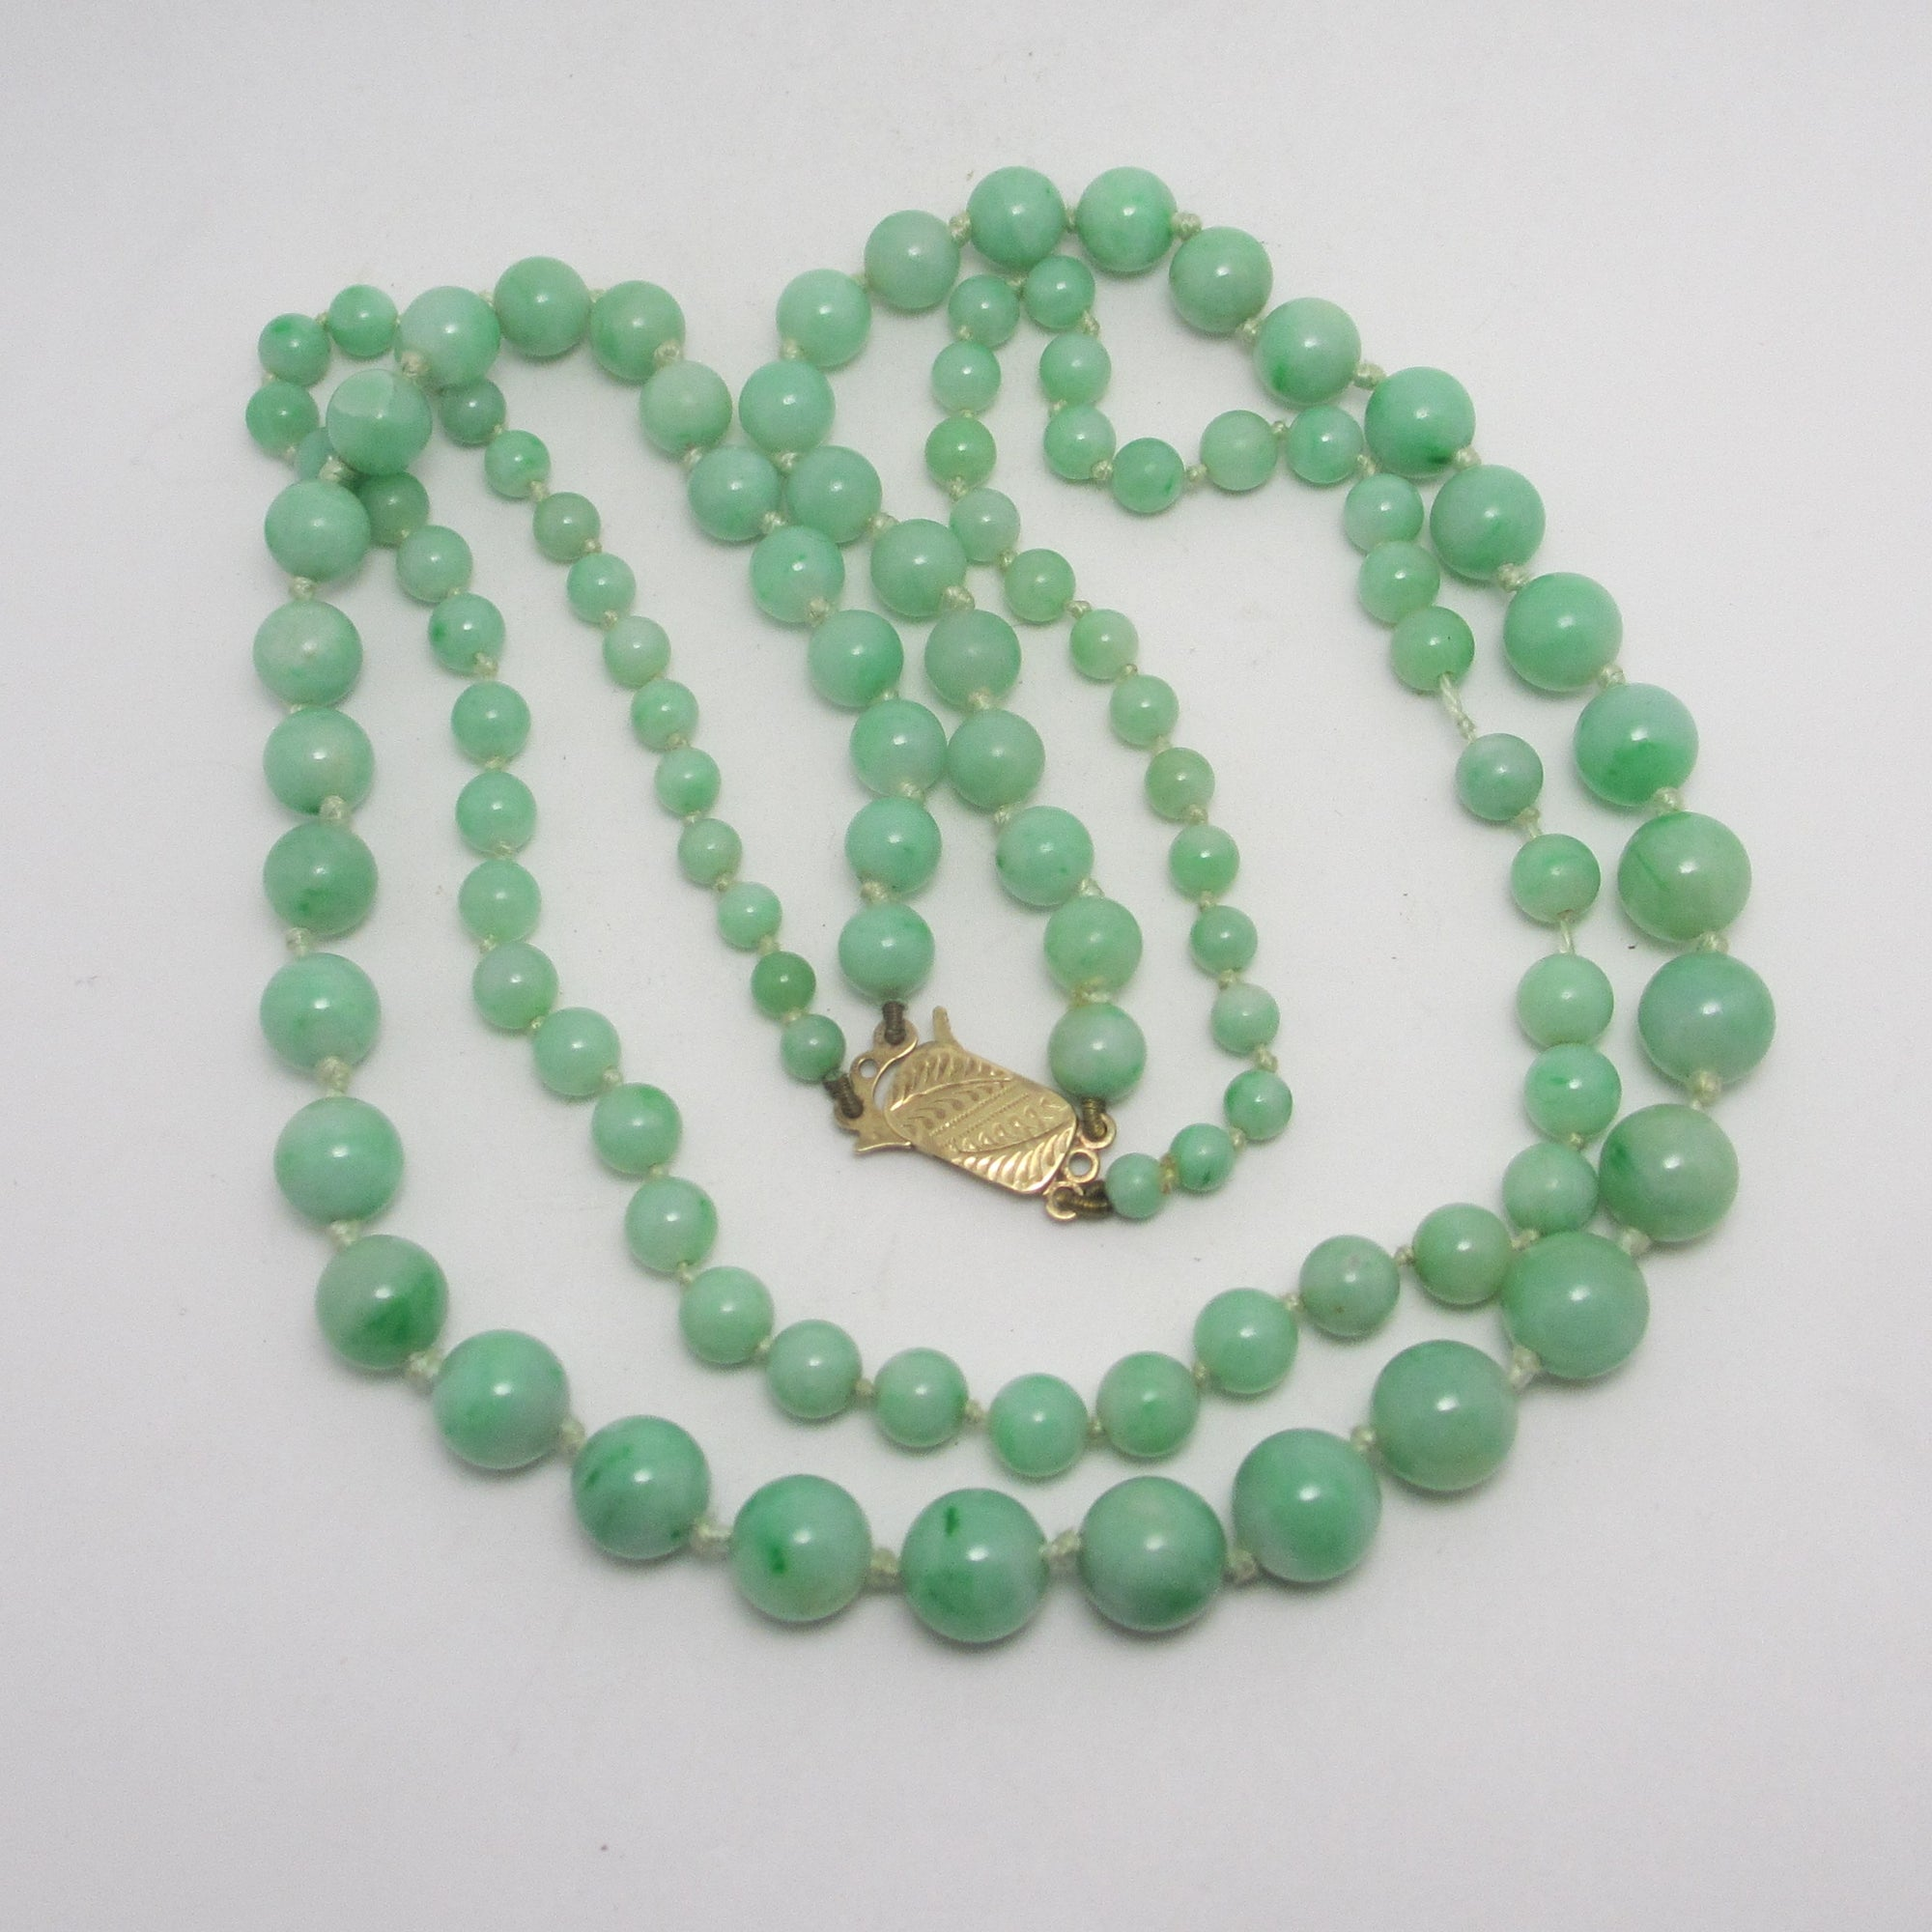 Double Strand Apple Green Jadeite Bead Necklace 9k Gold Clasp Vintage Art Deco c1920